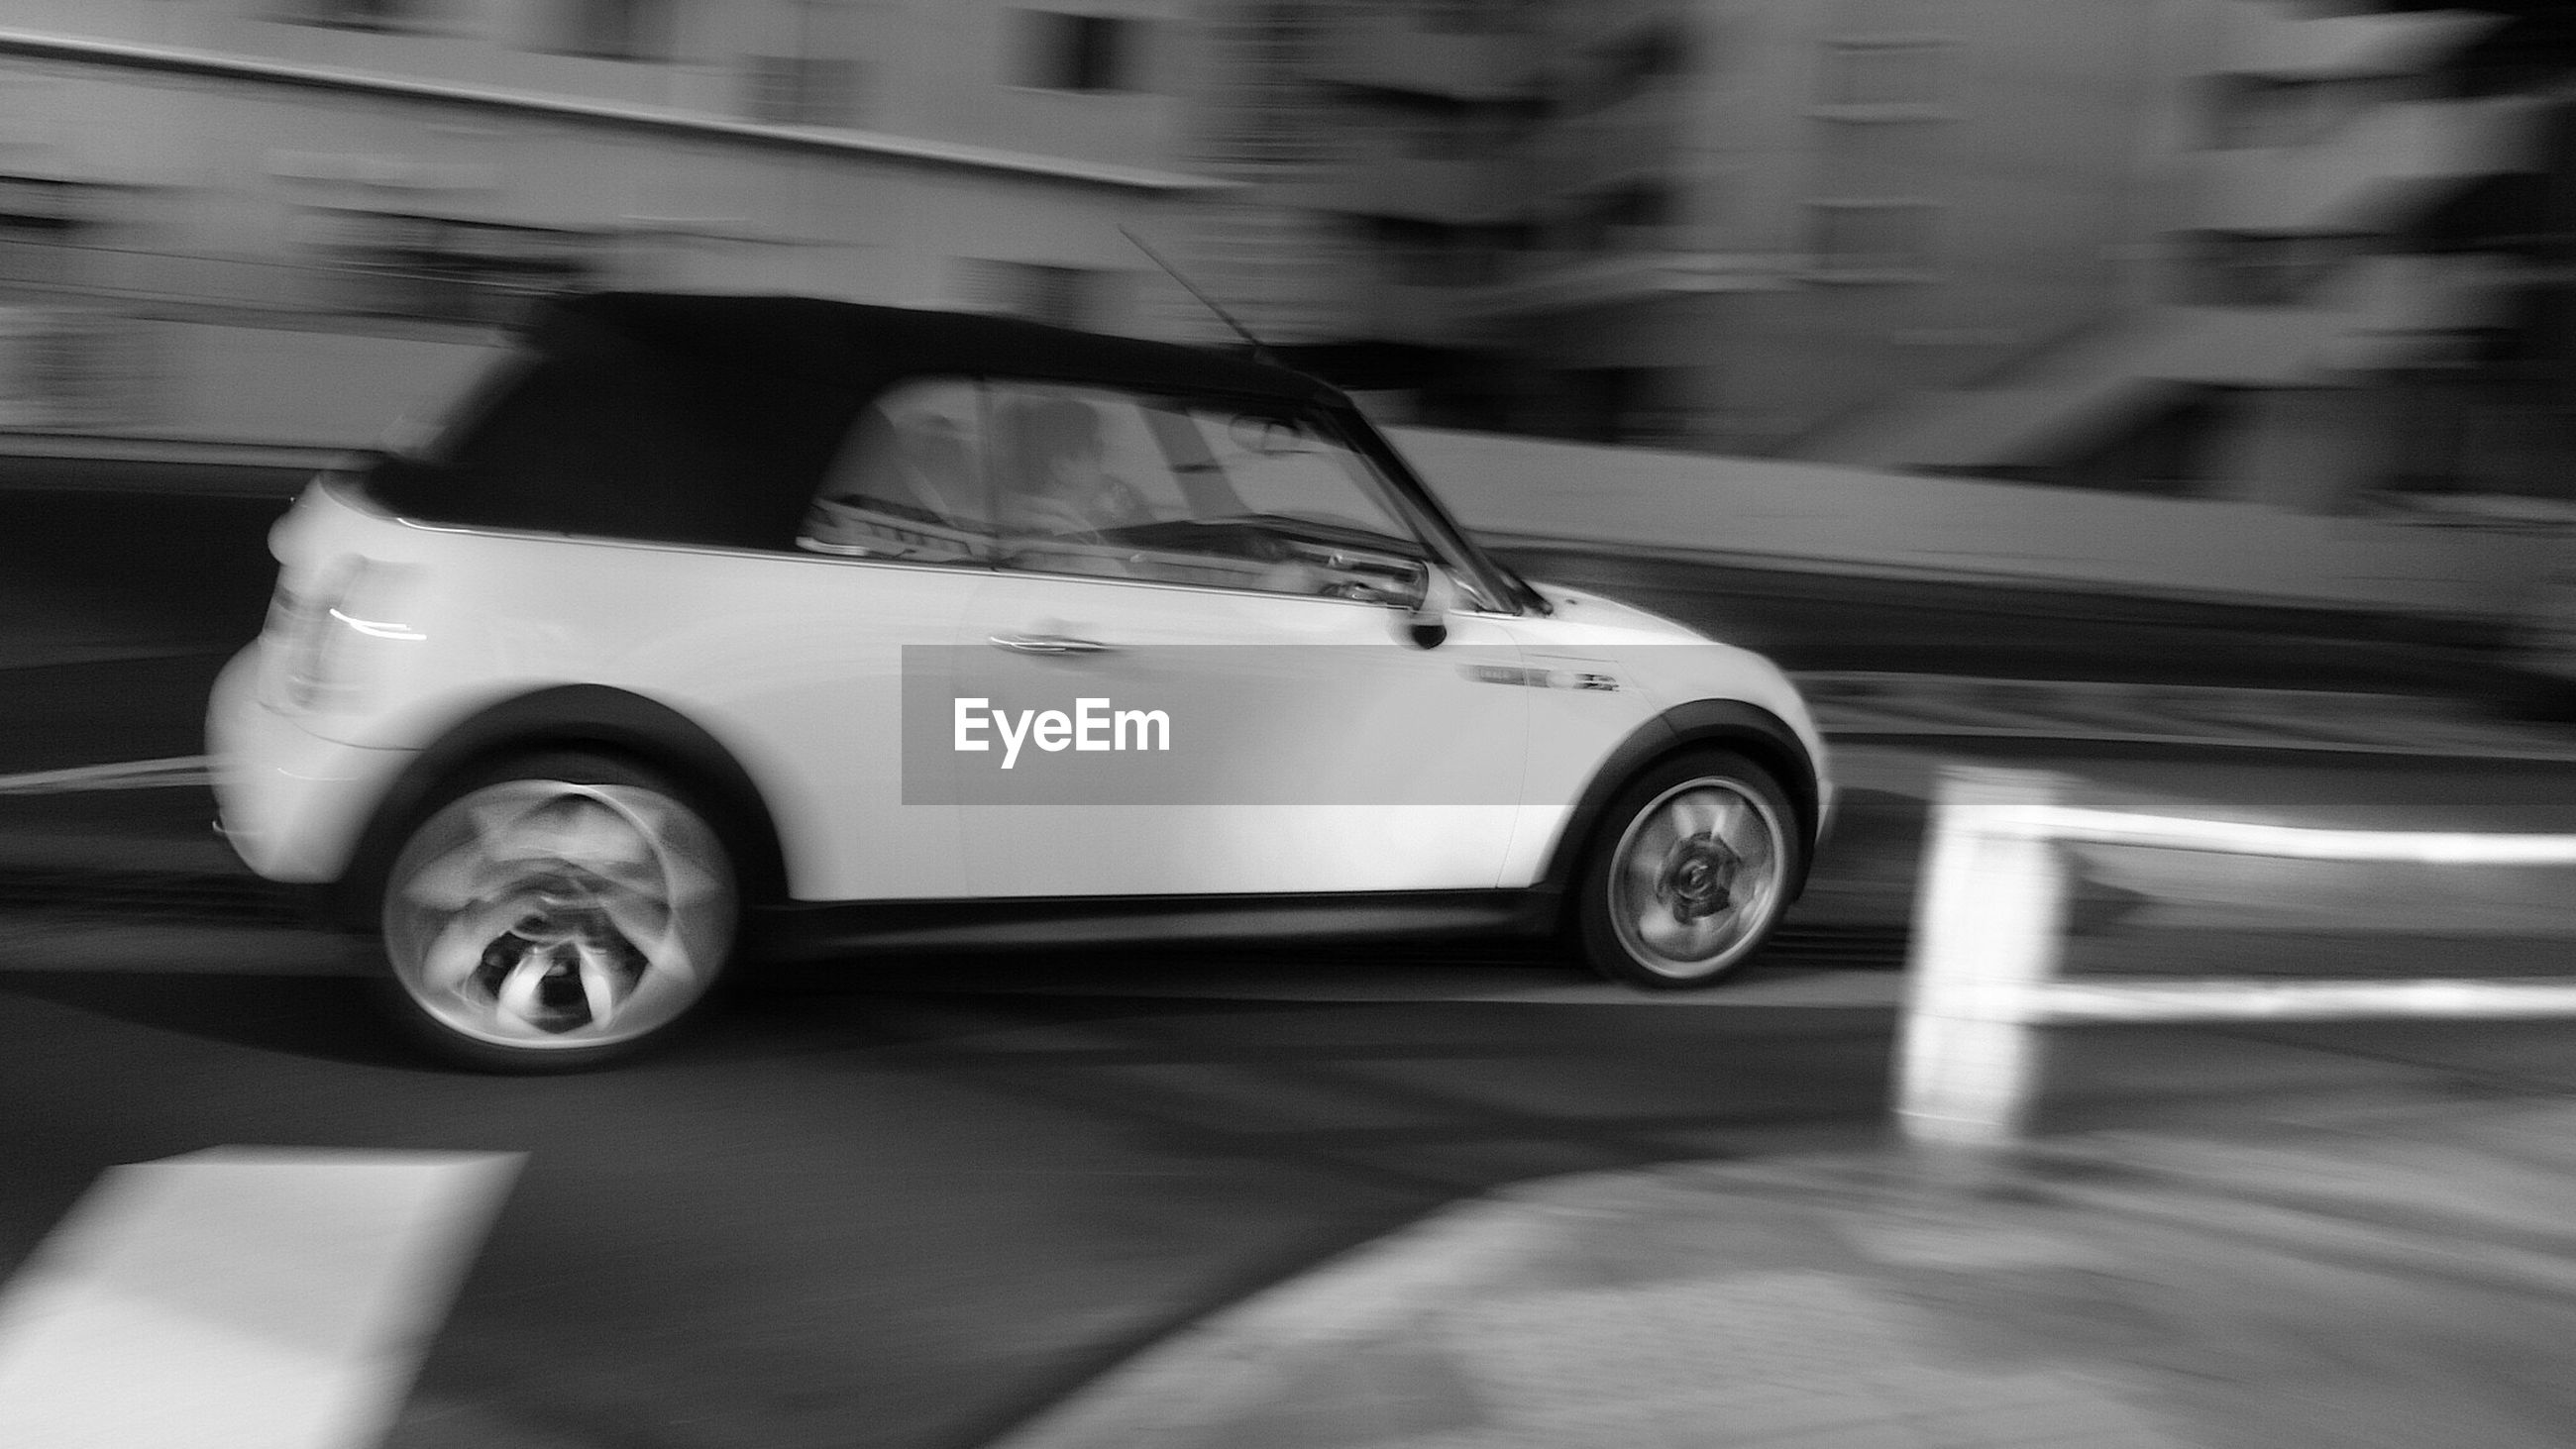 car, transportation, blurred motion, mode of transport, land vehicle, journey, speed, day, outdoors, no people, close-up, collector's car, racecar